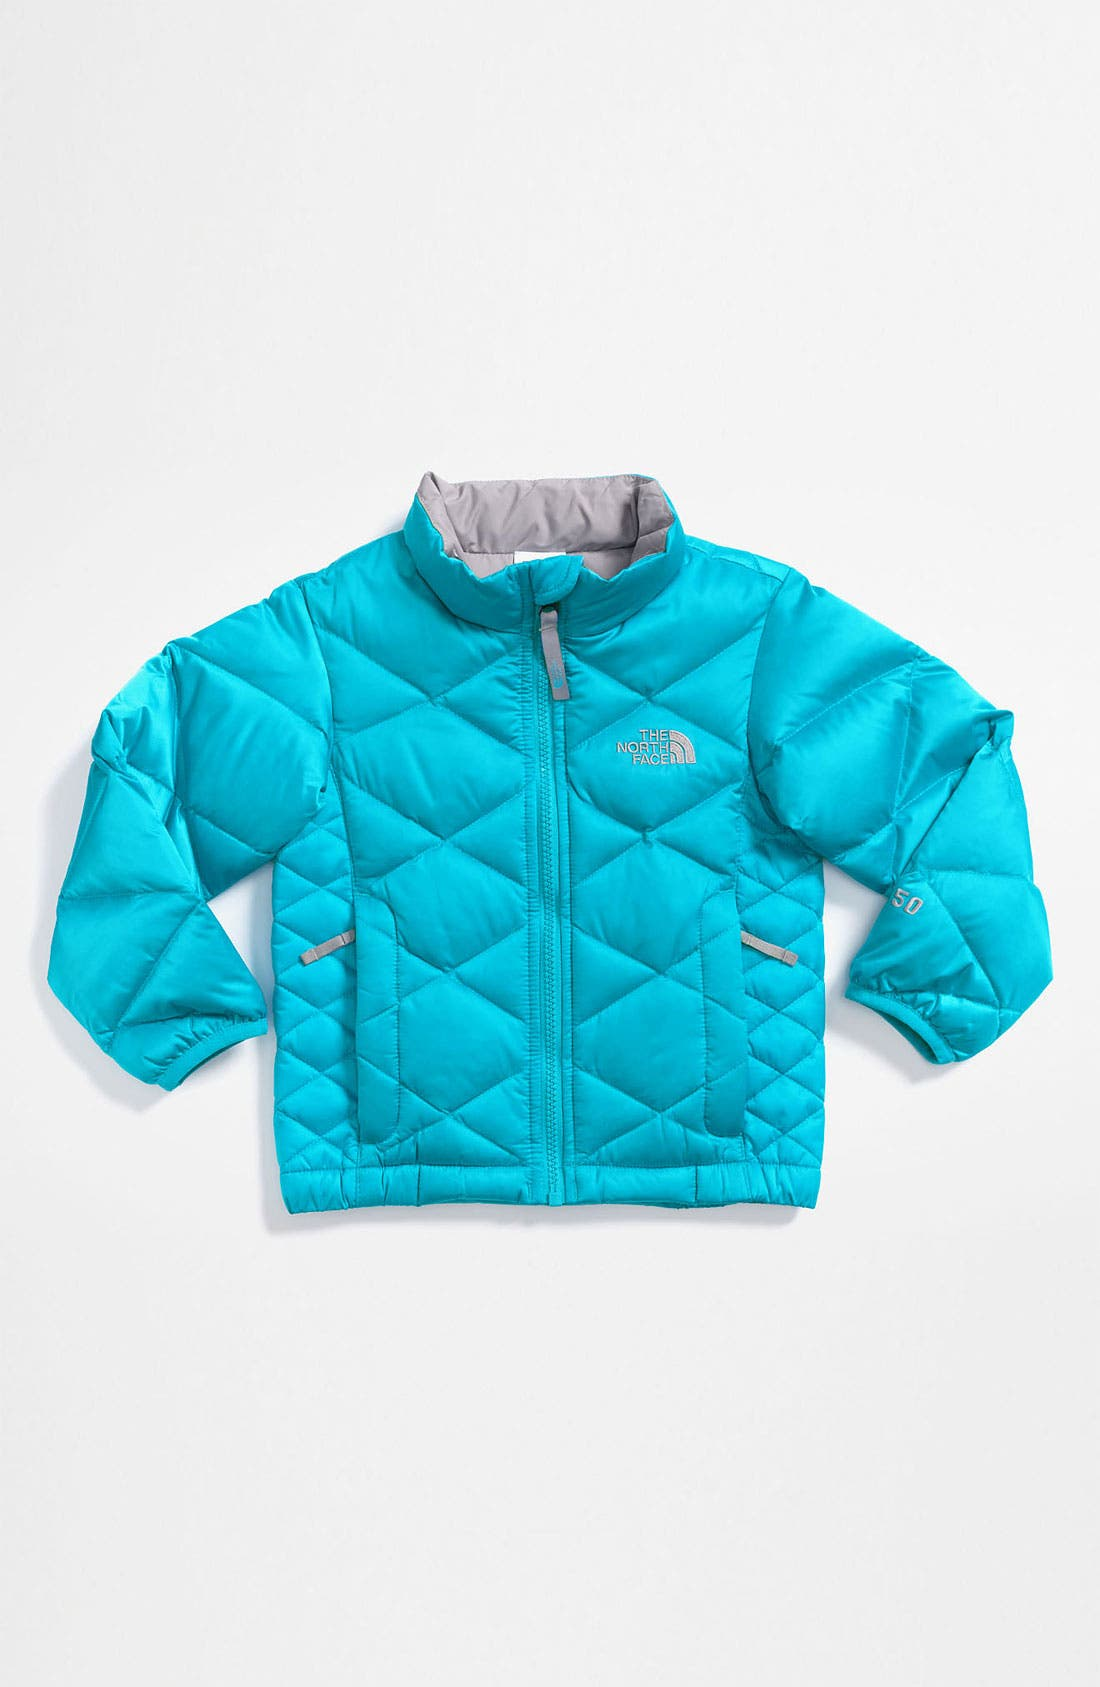 Alternate Image 1 Selected - The North Face 'Aconcagua' Jacket (Toddler Girls)